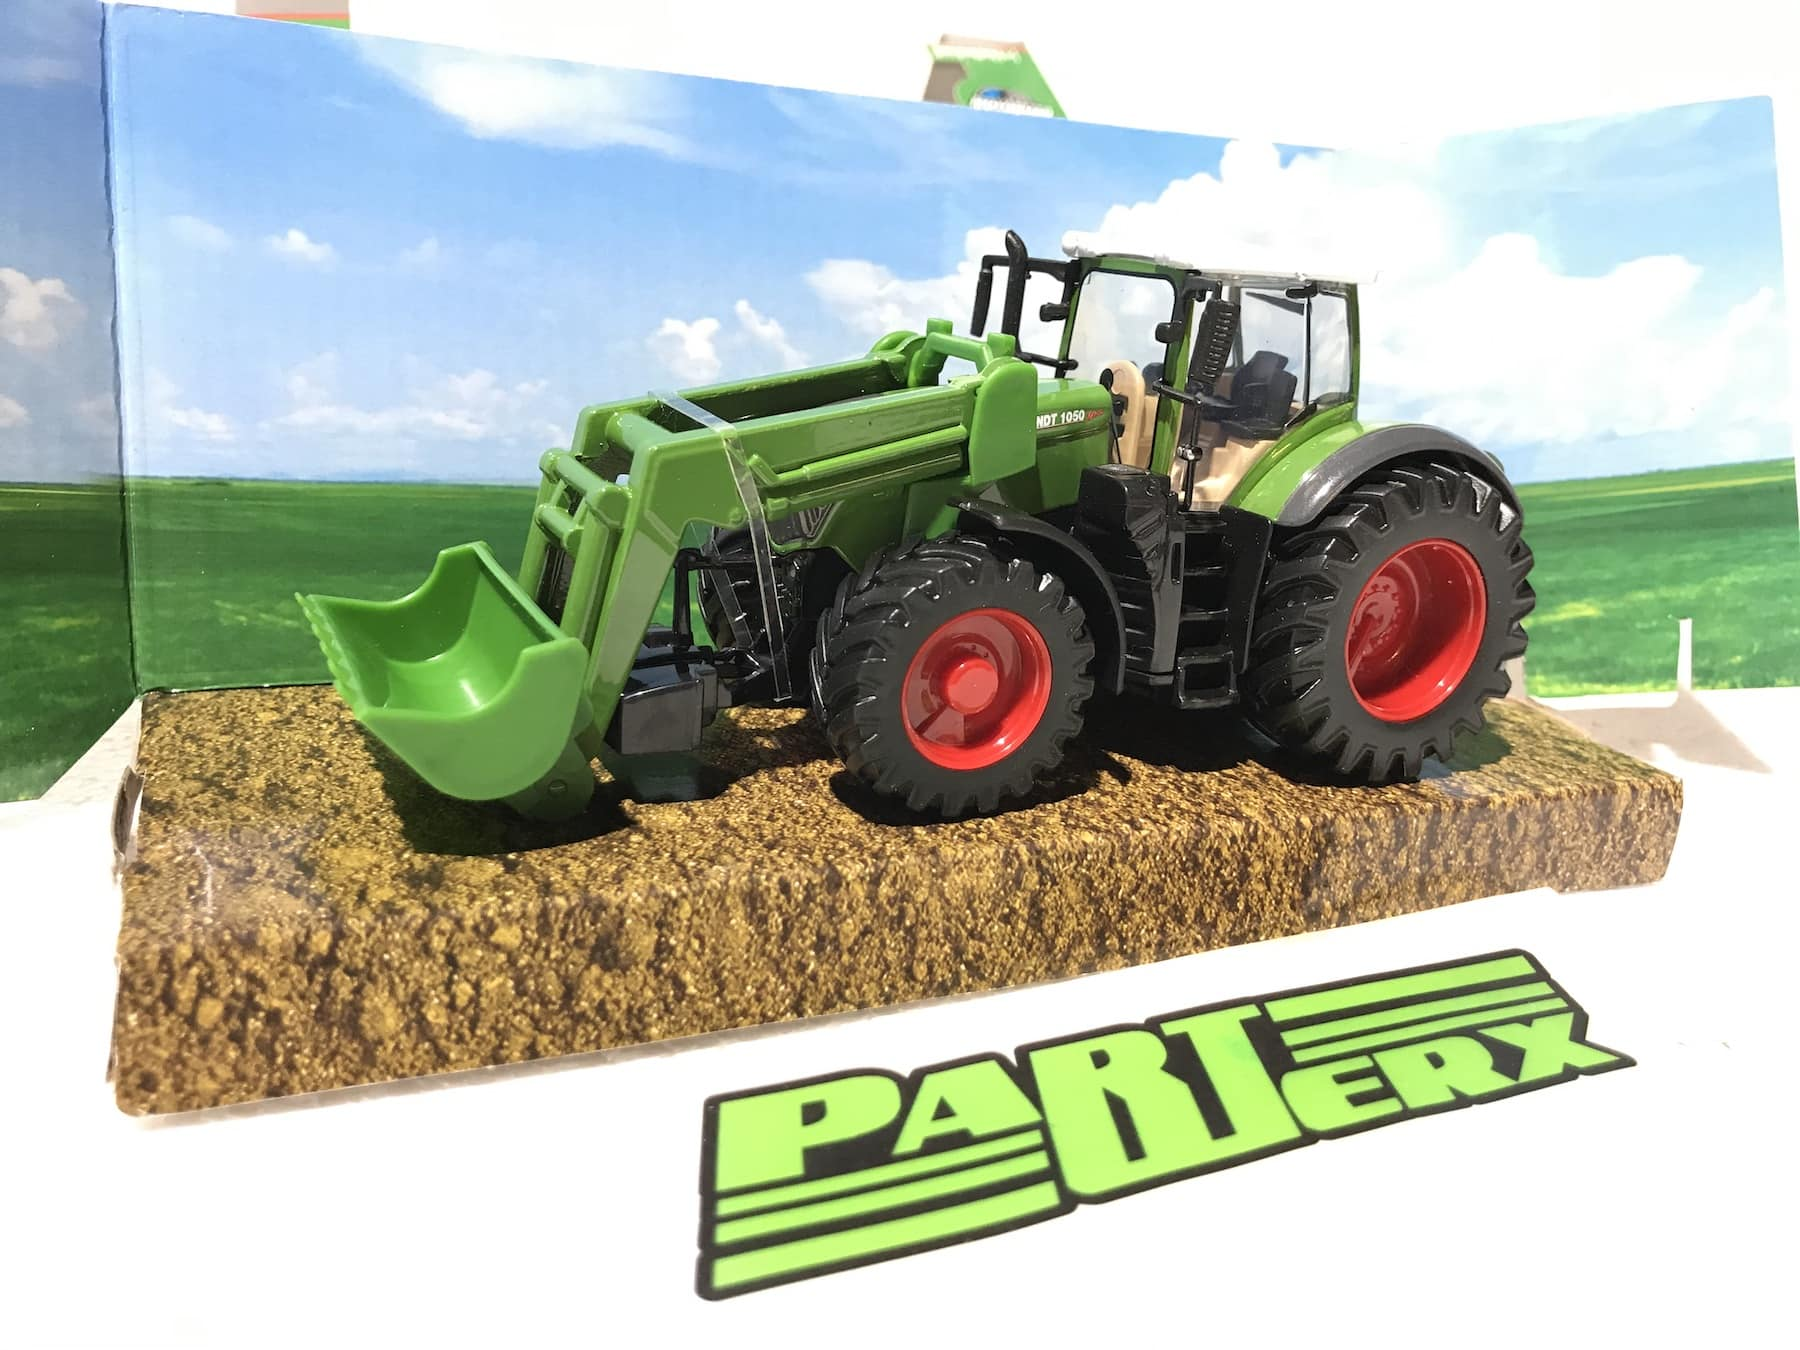 Fendt 1000 Vario Tractor + Front Loader Model Toy Childs Kids Enthusiasts Collectors Gift